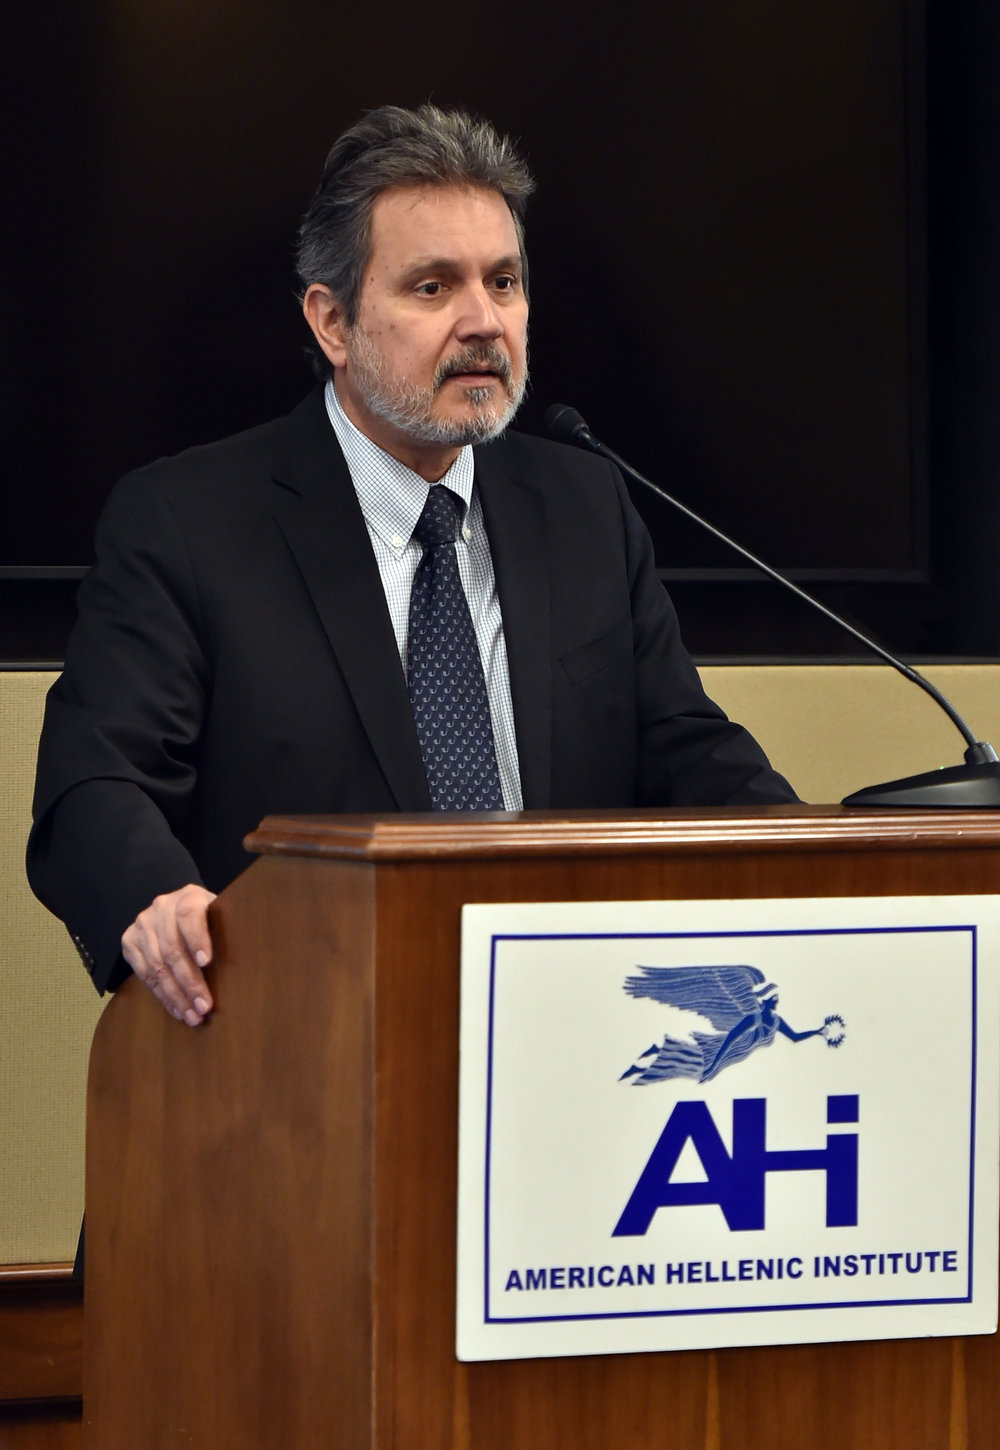 Haris Lalacos, Ambassador of Greece to the U.S.A.